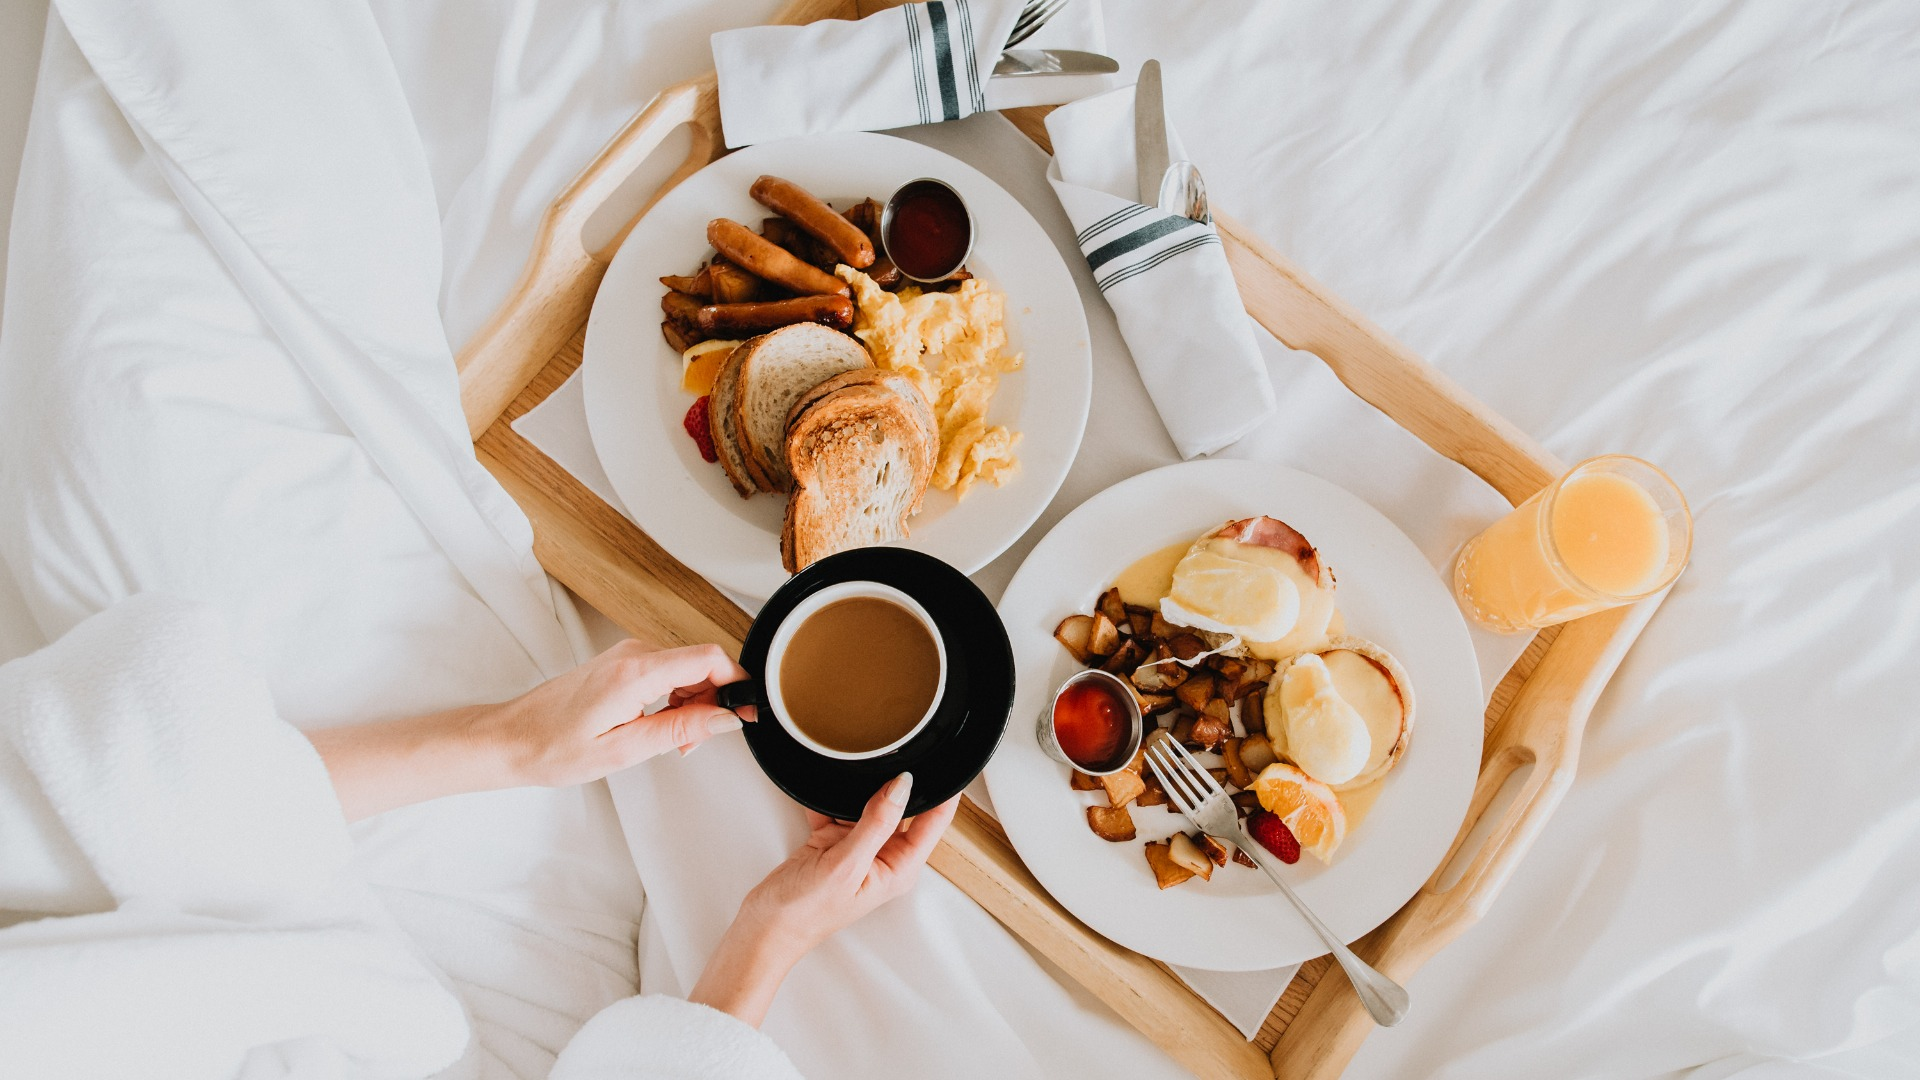 breakfast-in-bed-picture-id1080465450